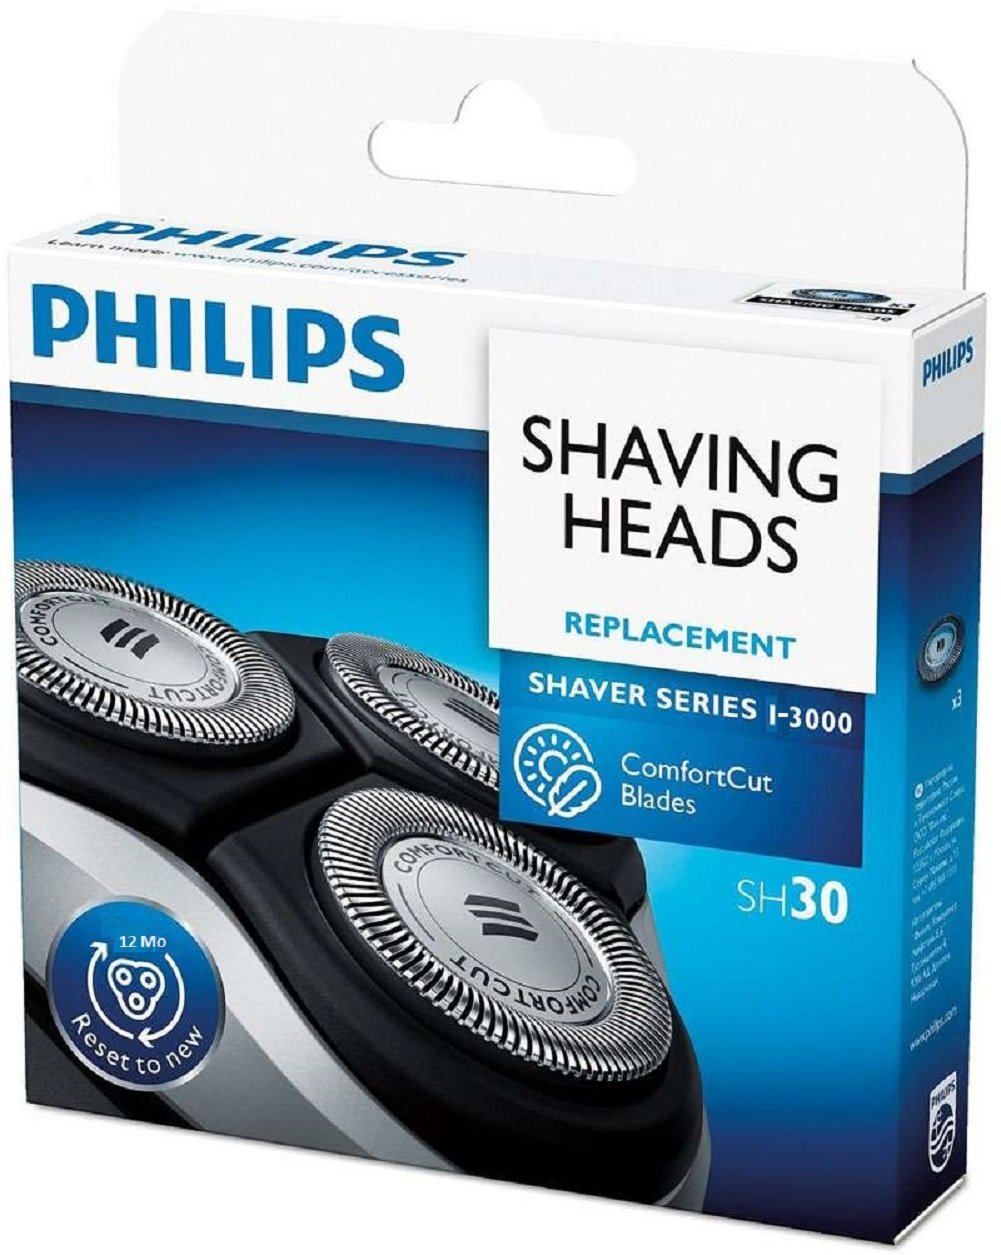 Philips Replacement Shaving Heads SH30 For series 1000-3000 (count 3)